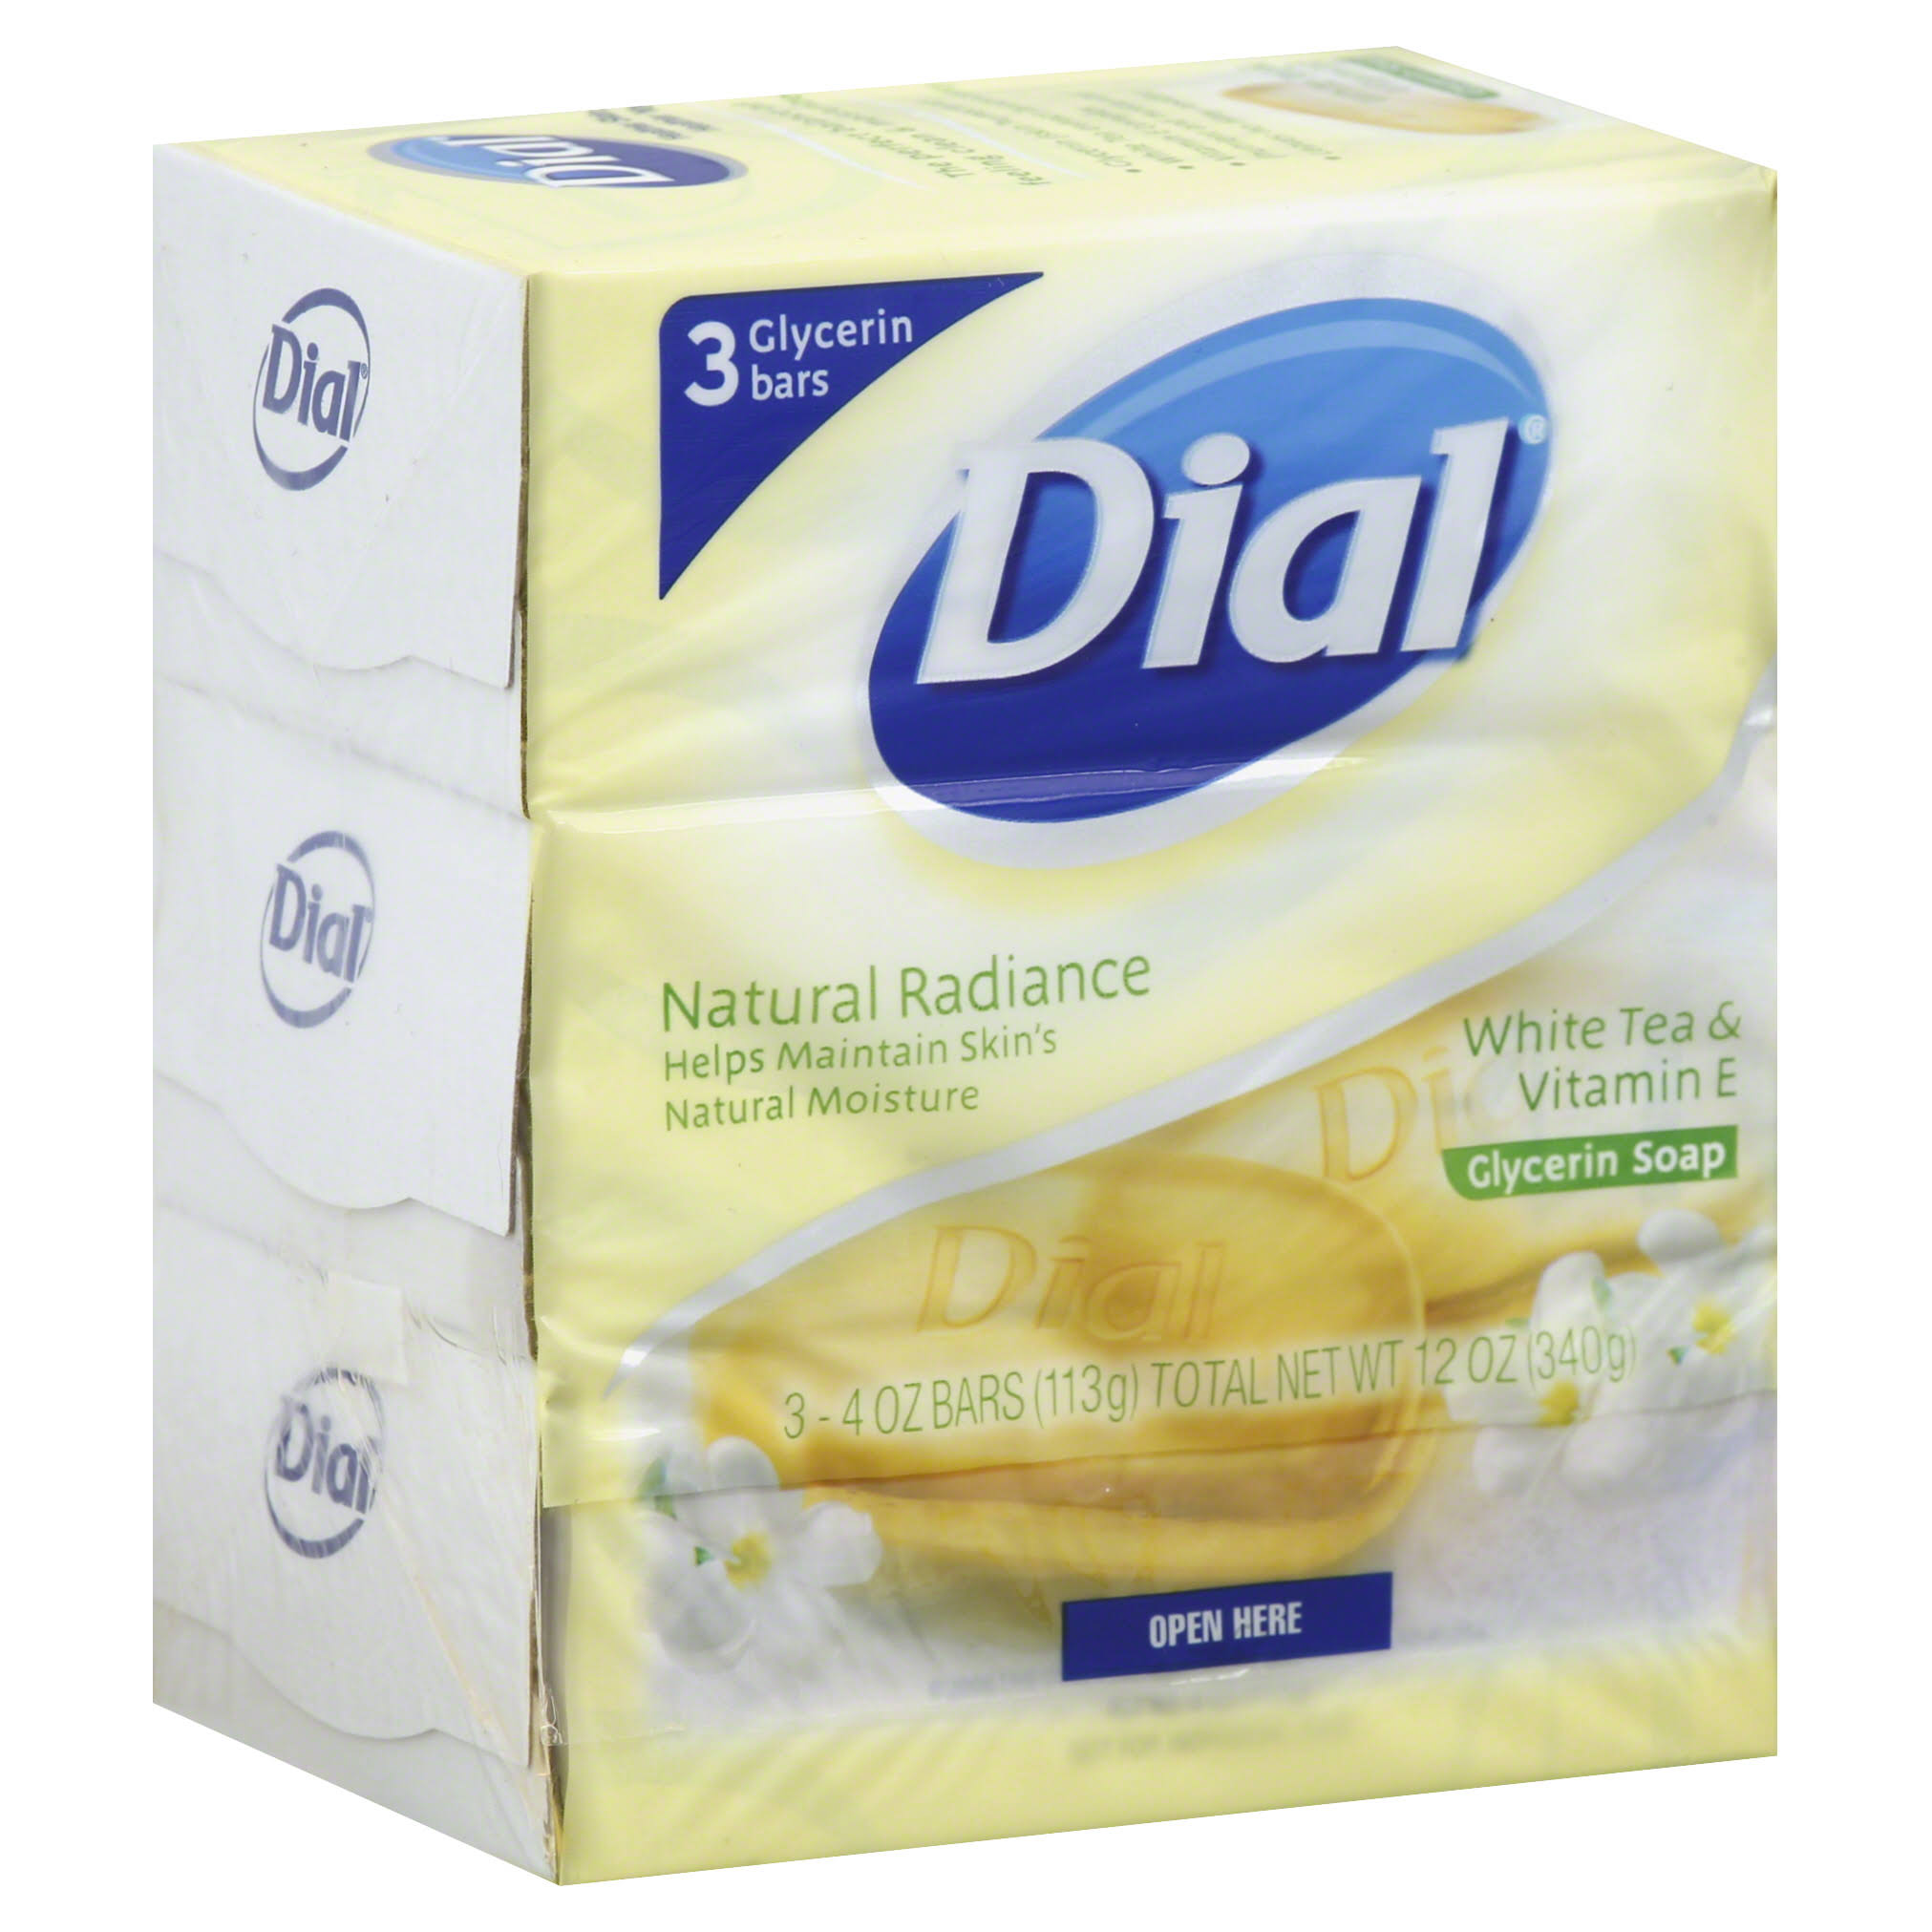 Dial Natural Radiance White Tea and Vitamin E Glycerin Soap - 4oz, 3 Count